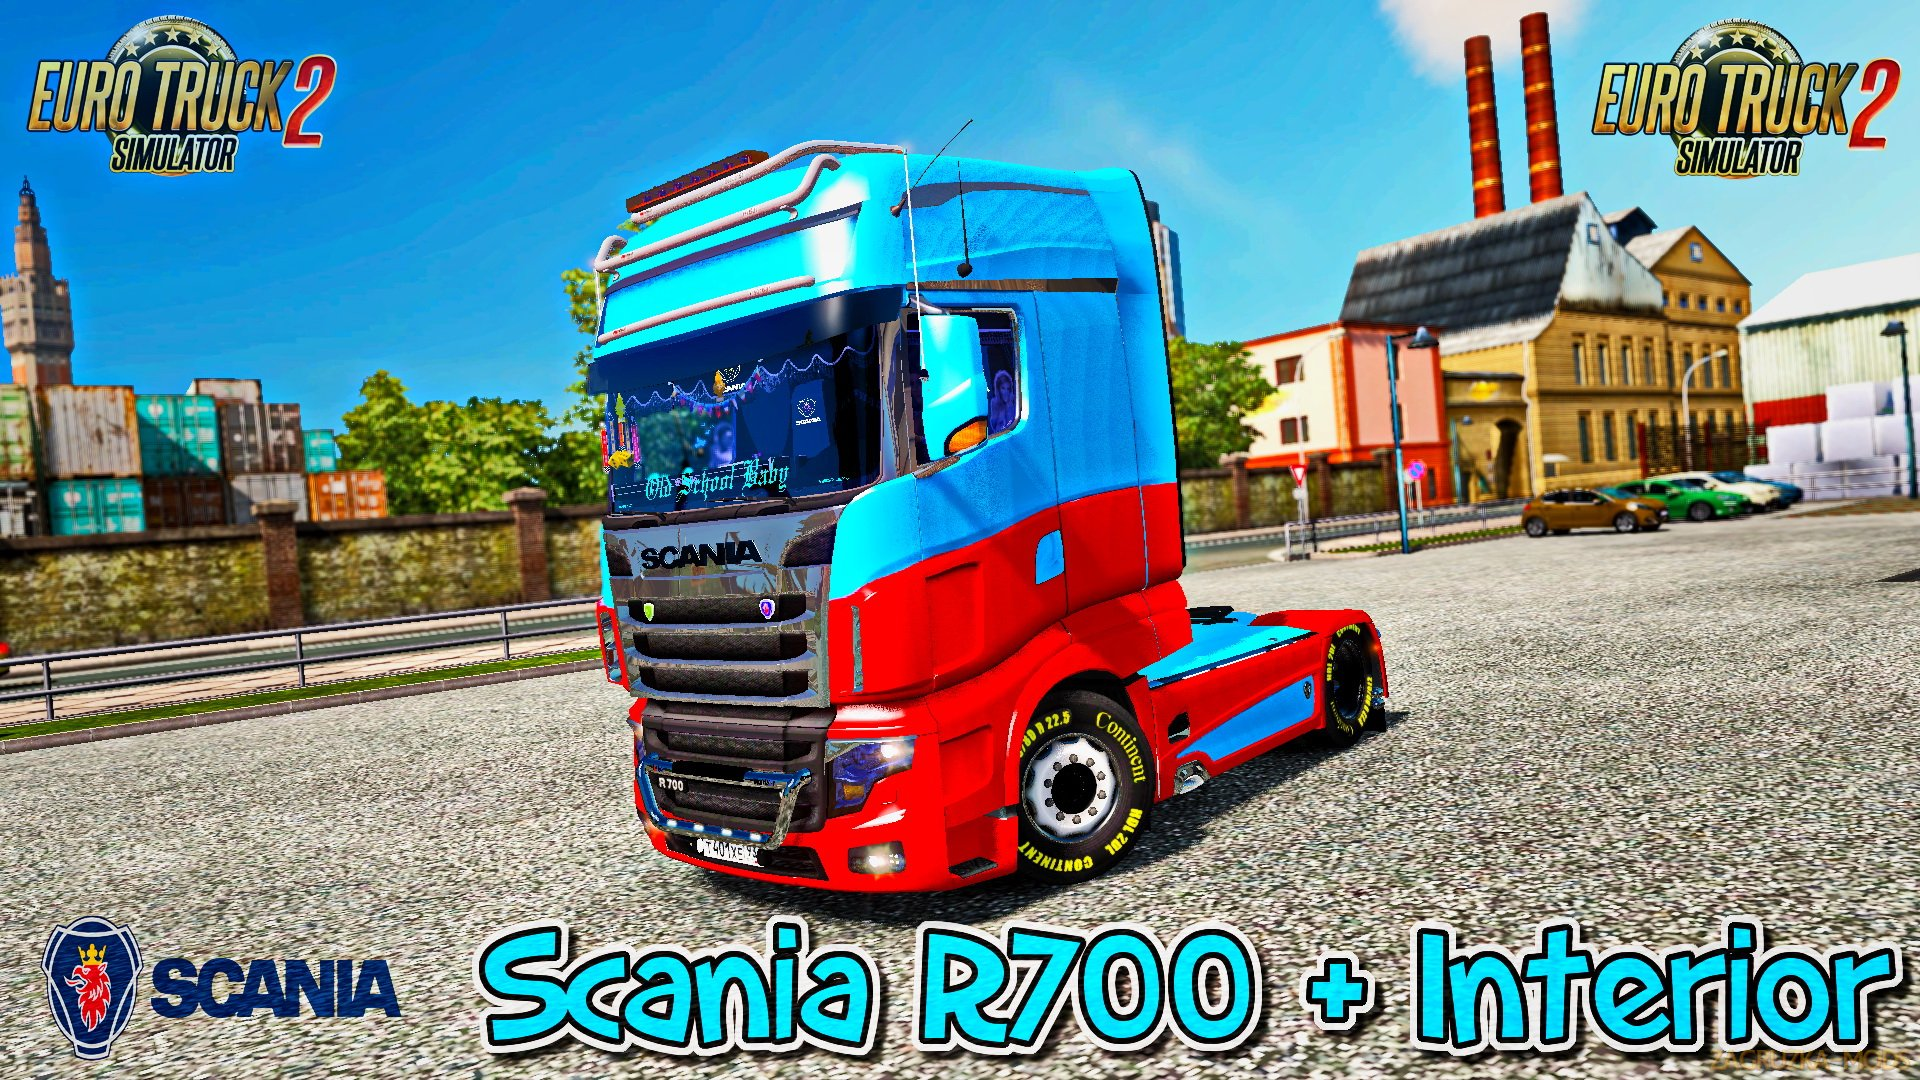 Scania R700 + Interior v1.0 (1.26.x) for ETS 2